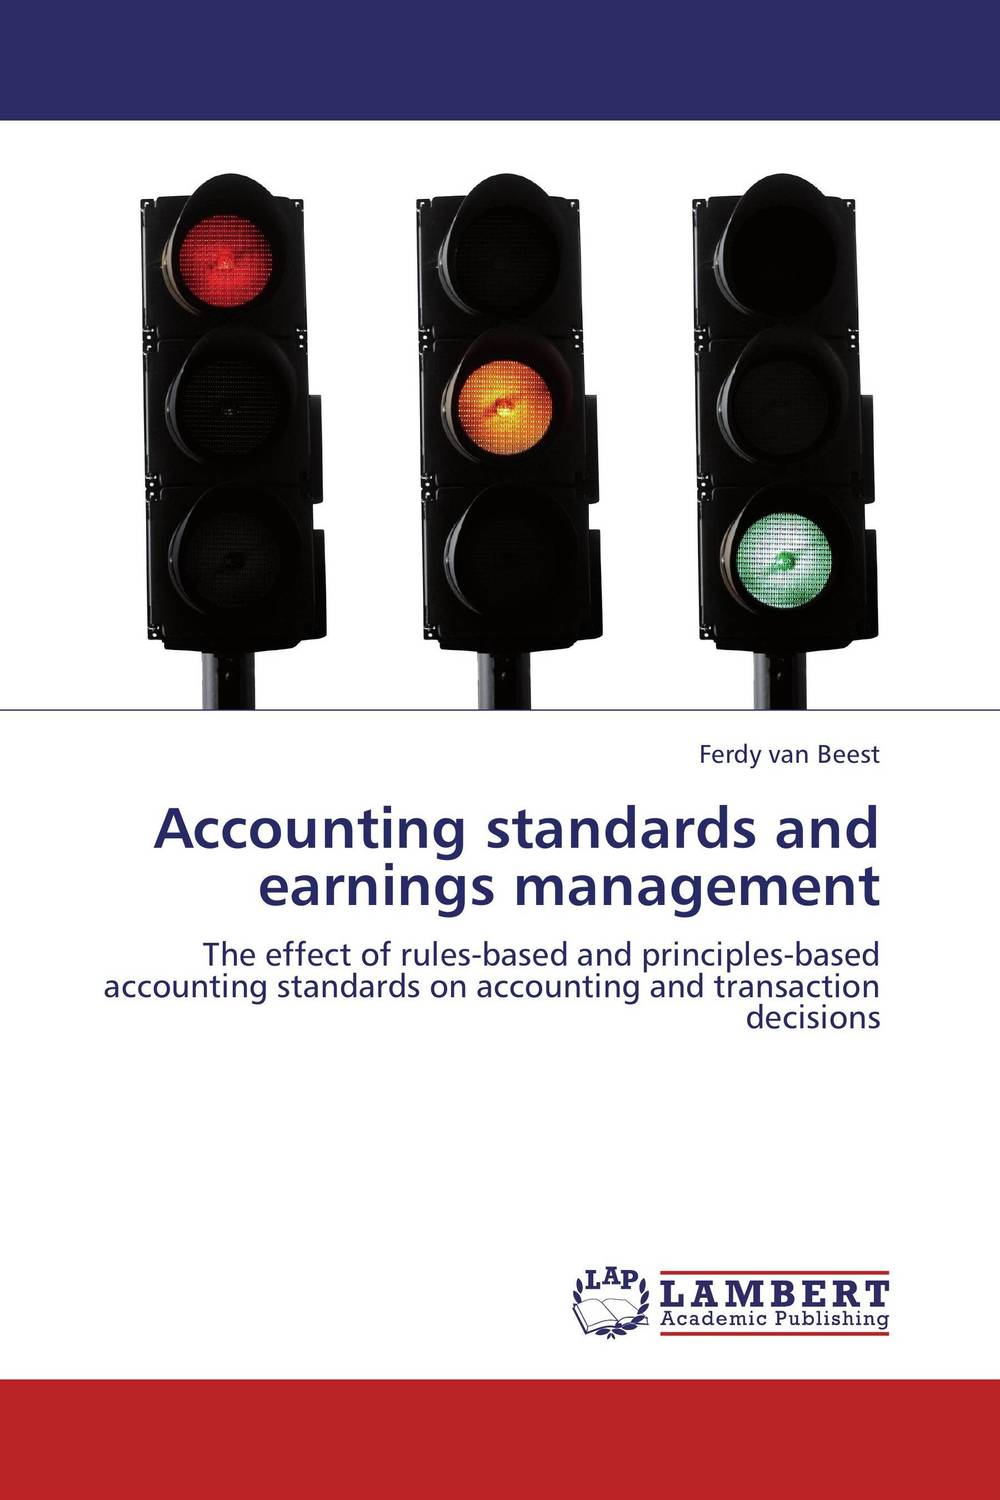 Accounting standards and earnings management police reaper pl 14385jsb 57